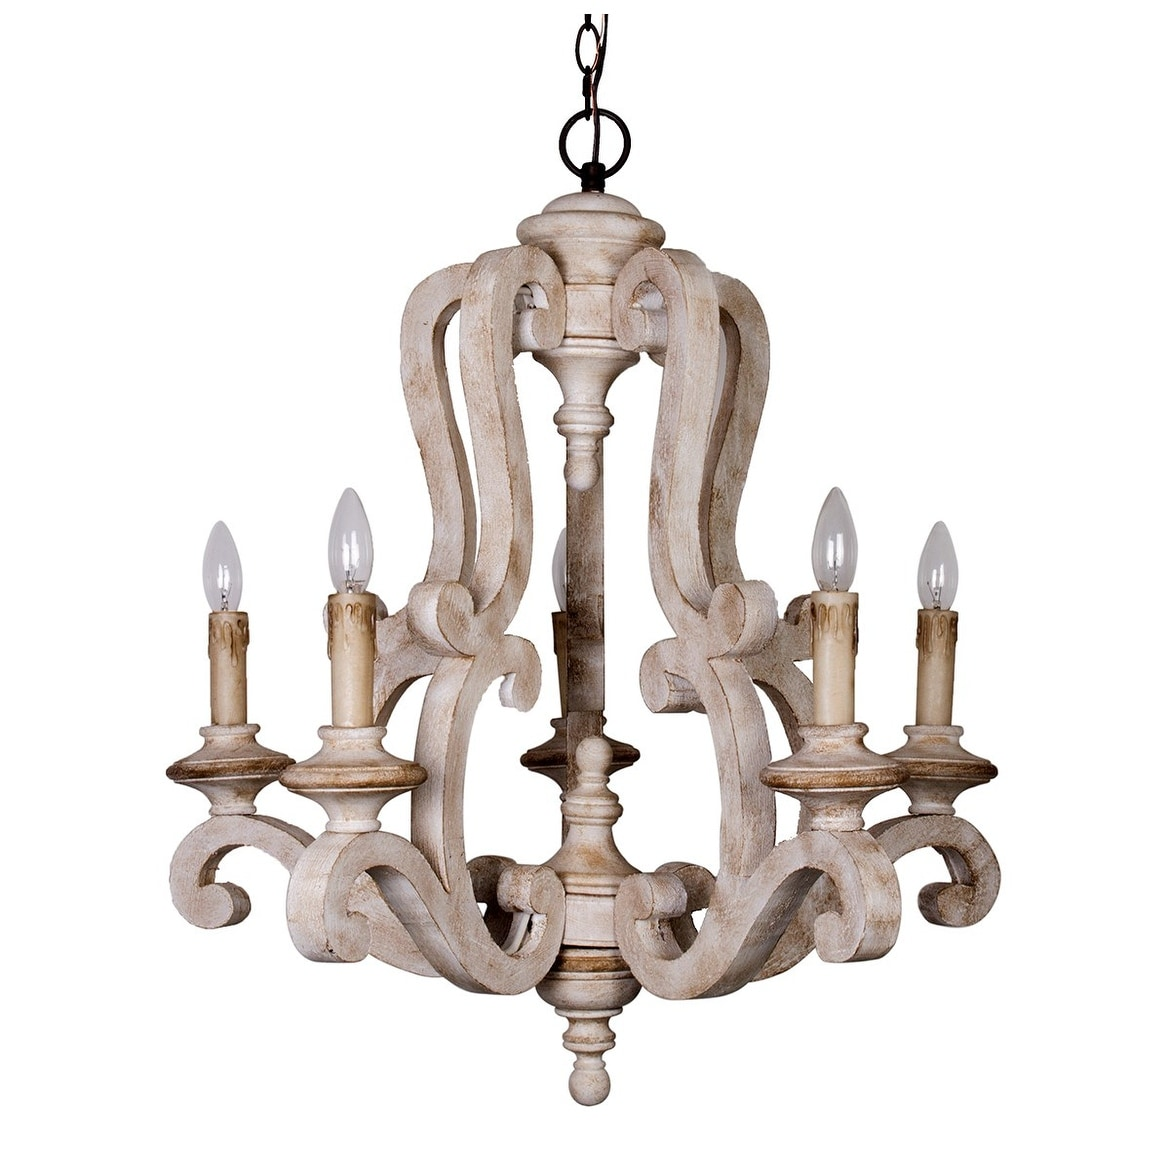 Shop farmhouse distressed antique white 5 light wood chandeliers shop farmhouse distressed antique white 5 light wood chandeliers on sale free shipping today overstock 19502082 aloadofball Images